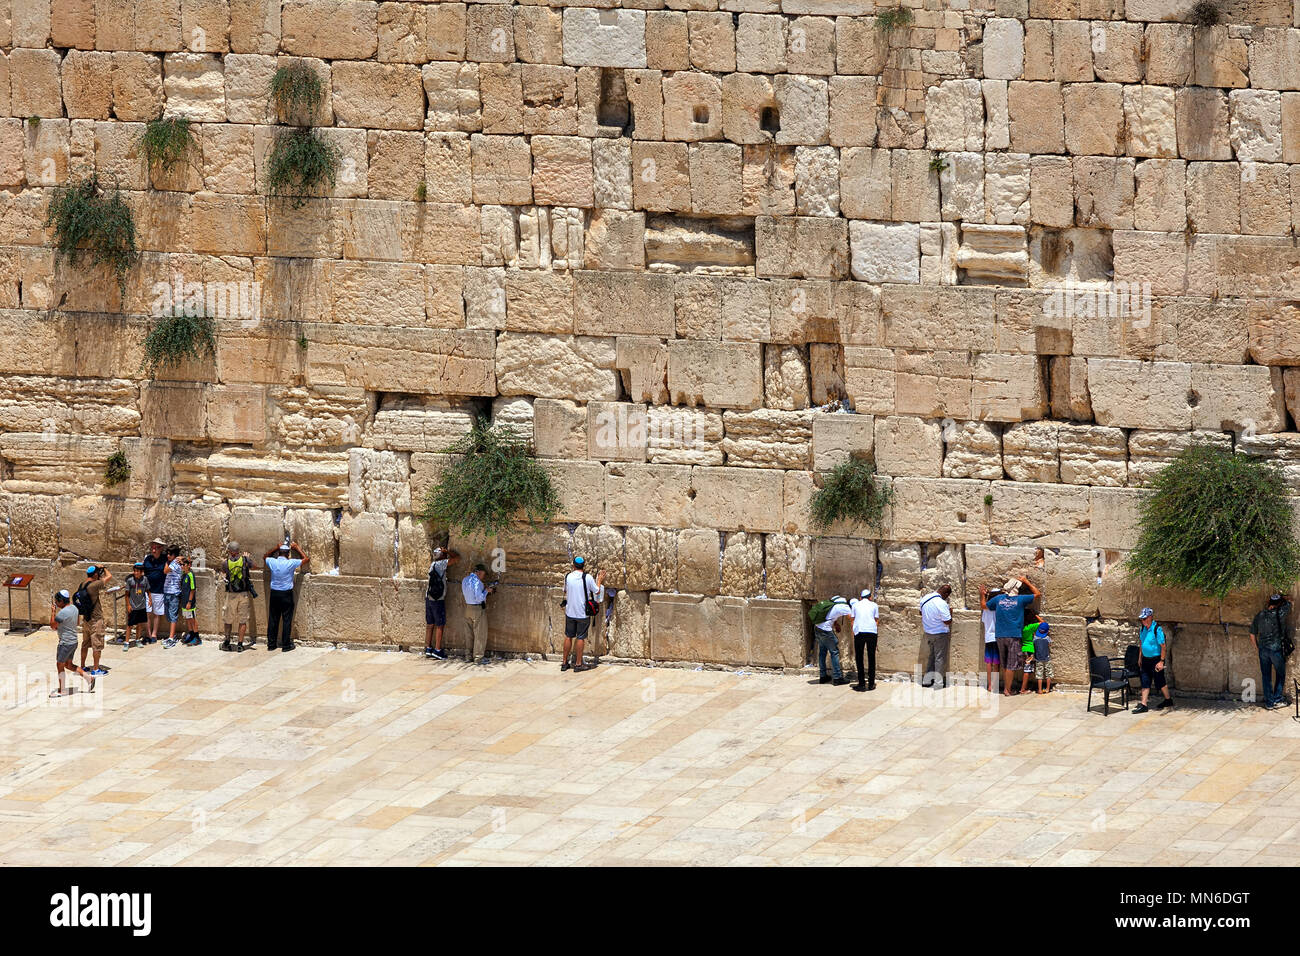 People praying at Western Wall - ancient wall in Old City of Jerusalem, Israel. - Stock Image